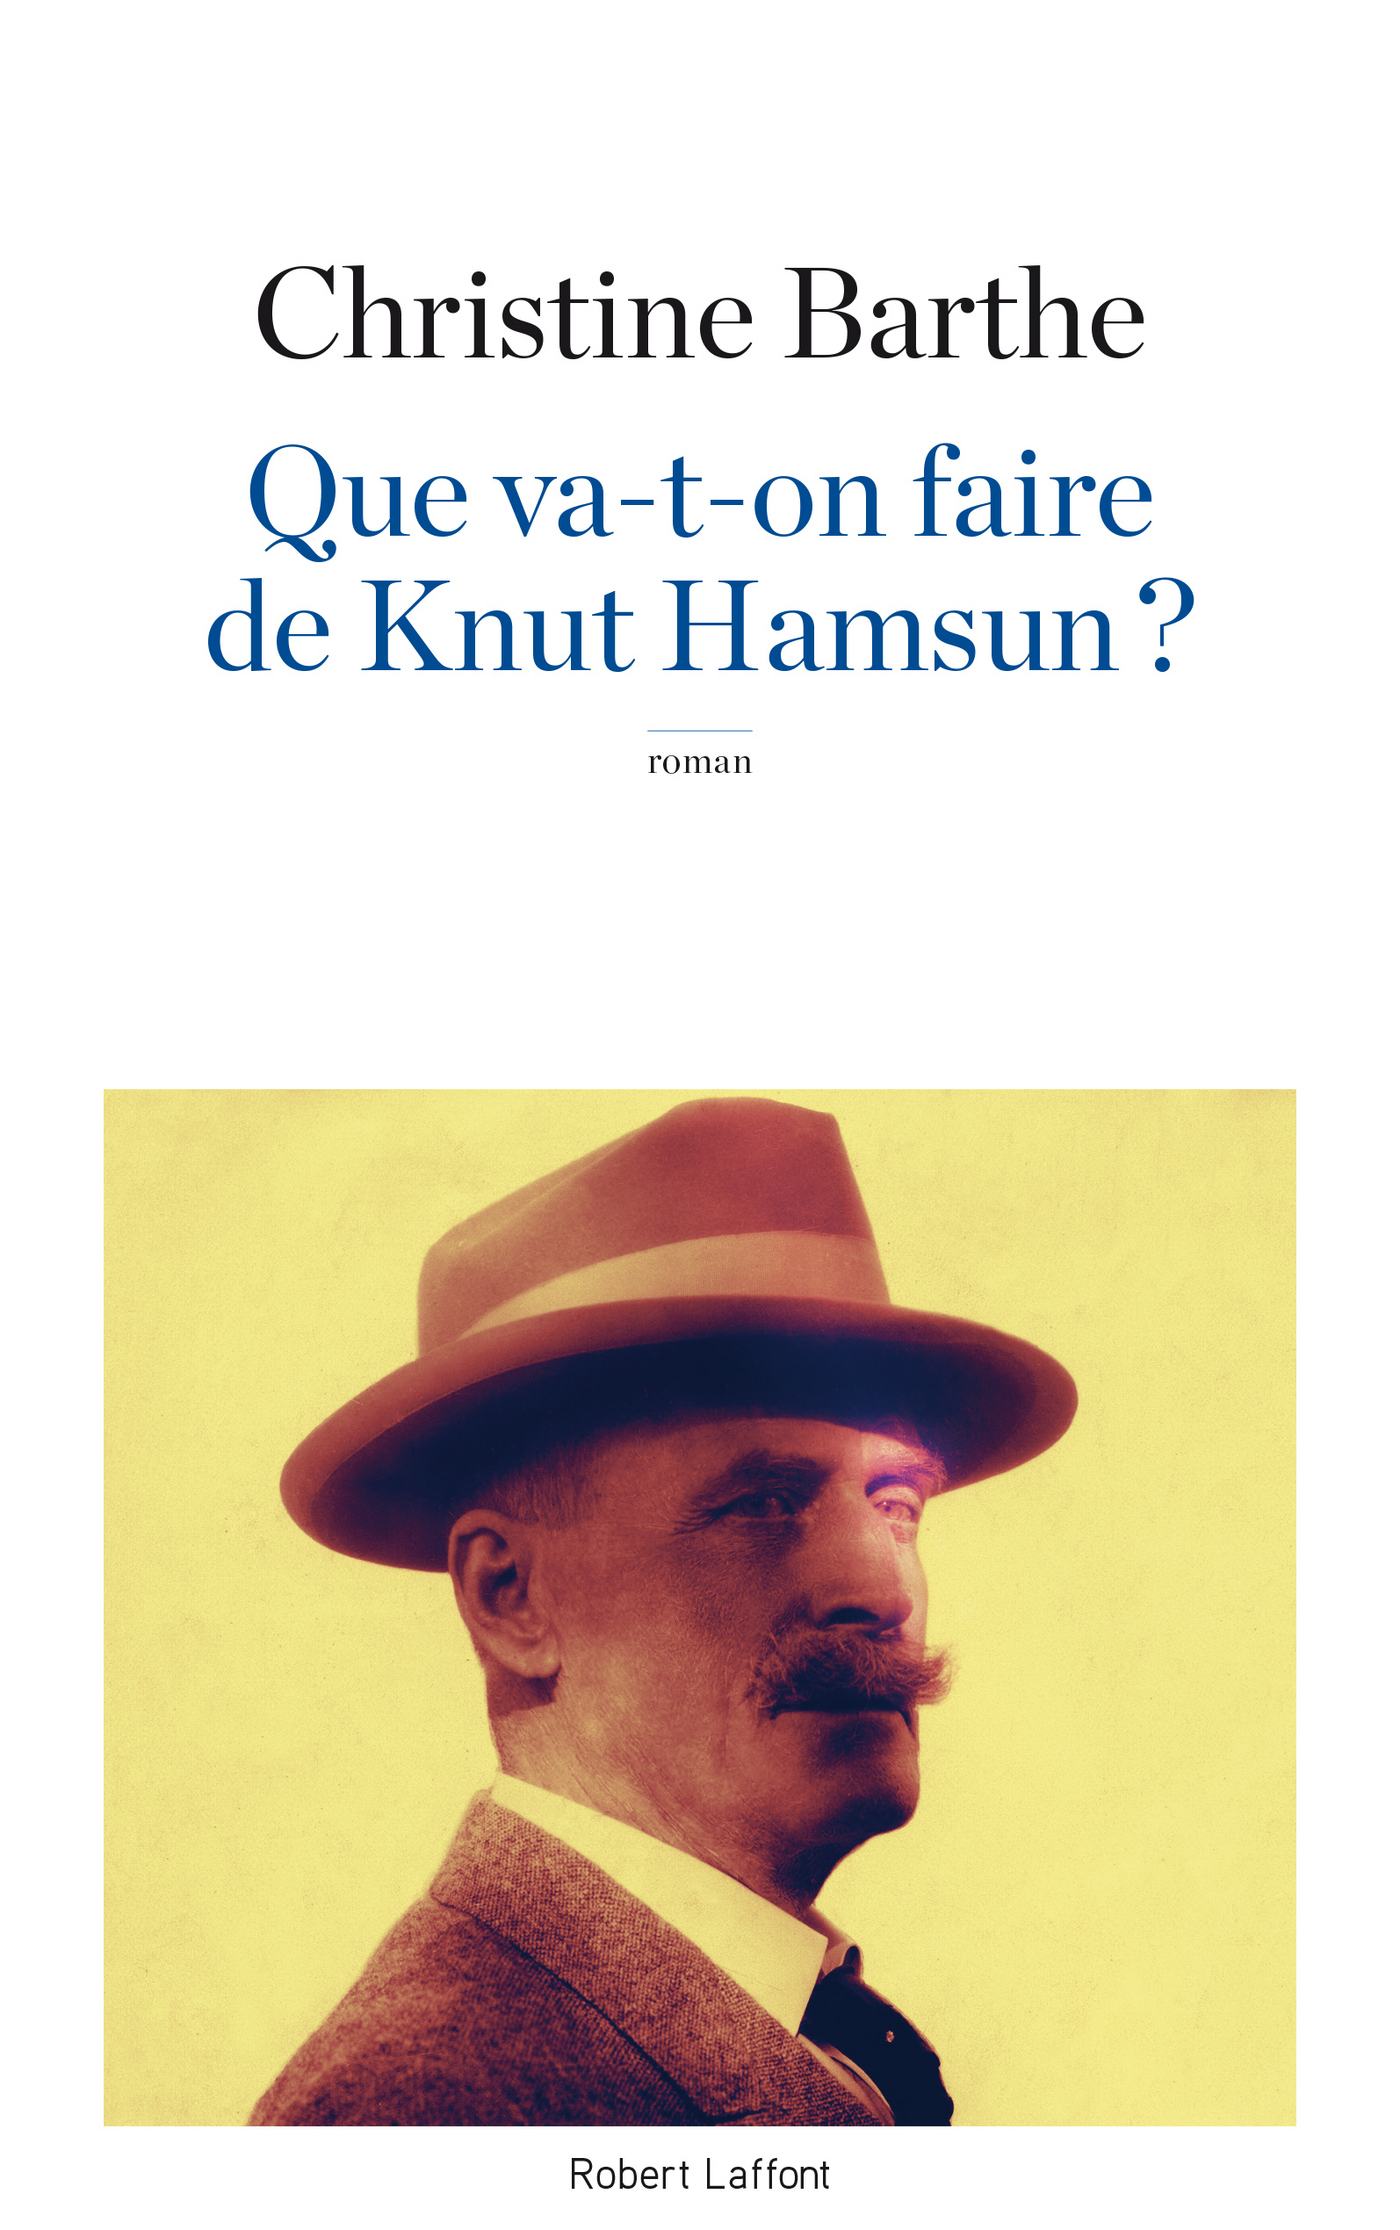 Que va-t-on faire de Knut Hamsun ?